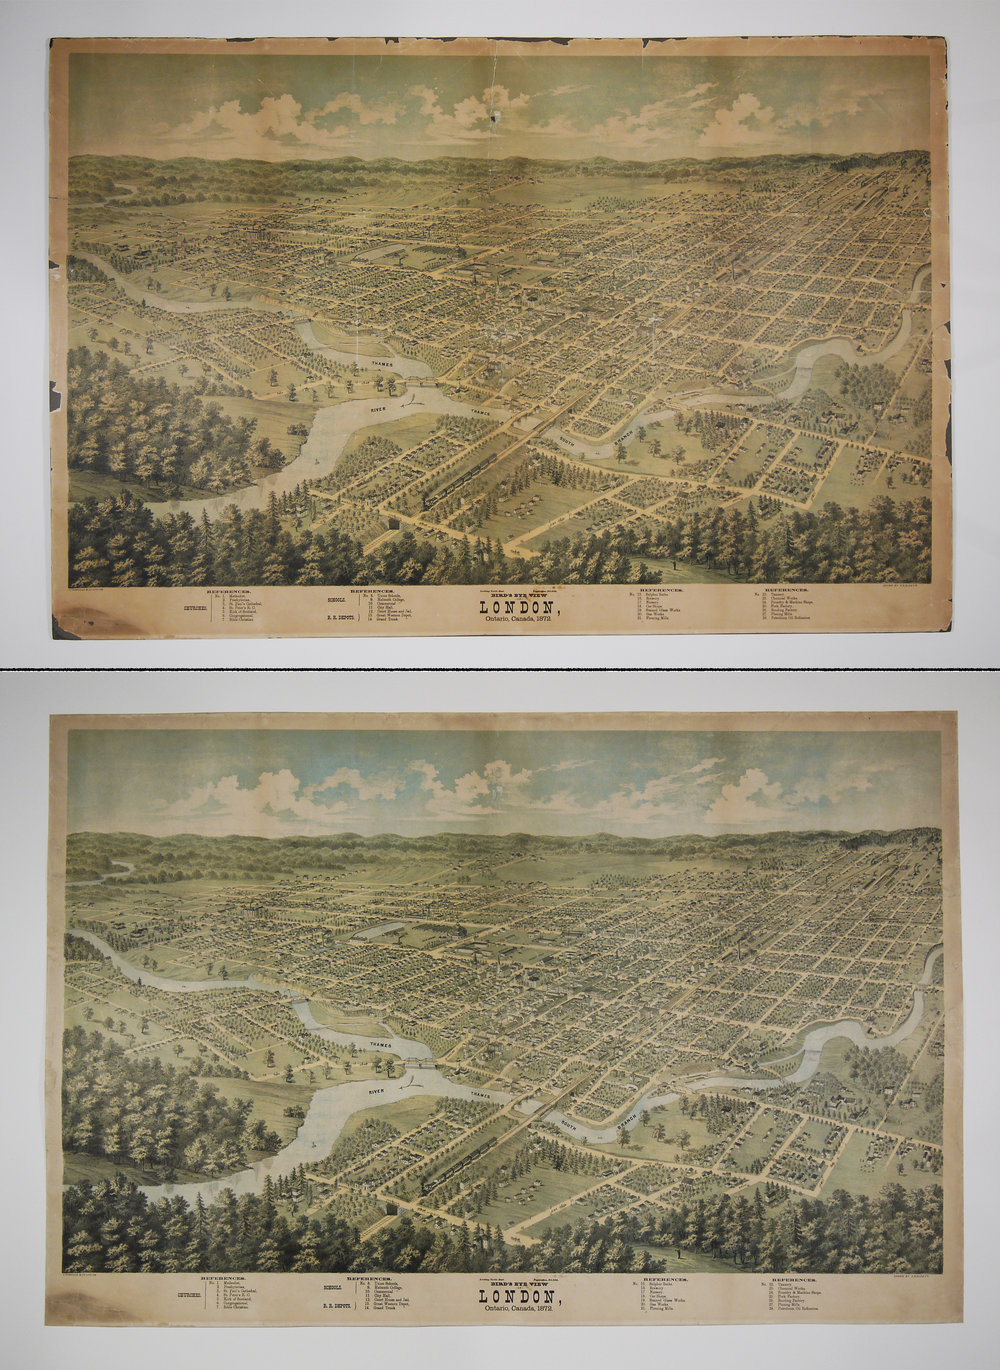 Bird's Eye View of London, Ontario, Canada, 1872, before and after conservation treatment.